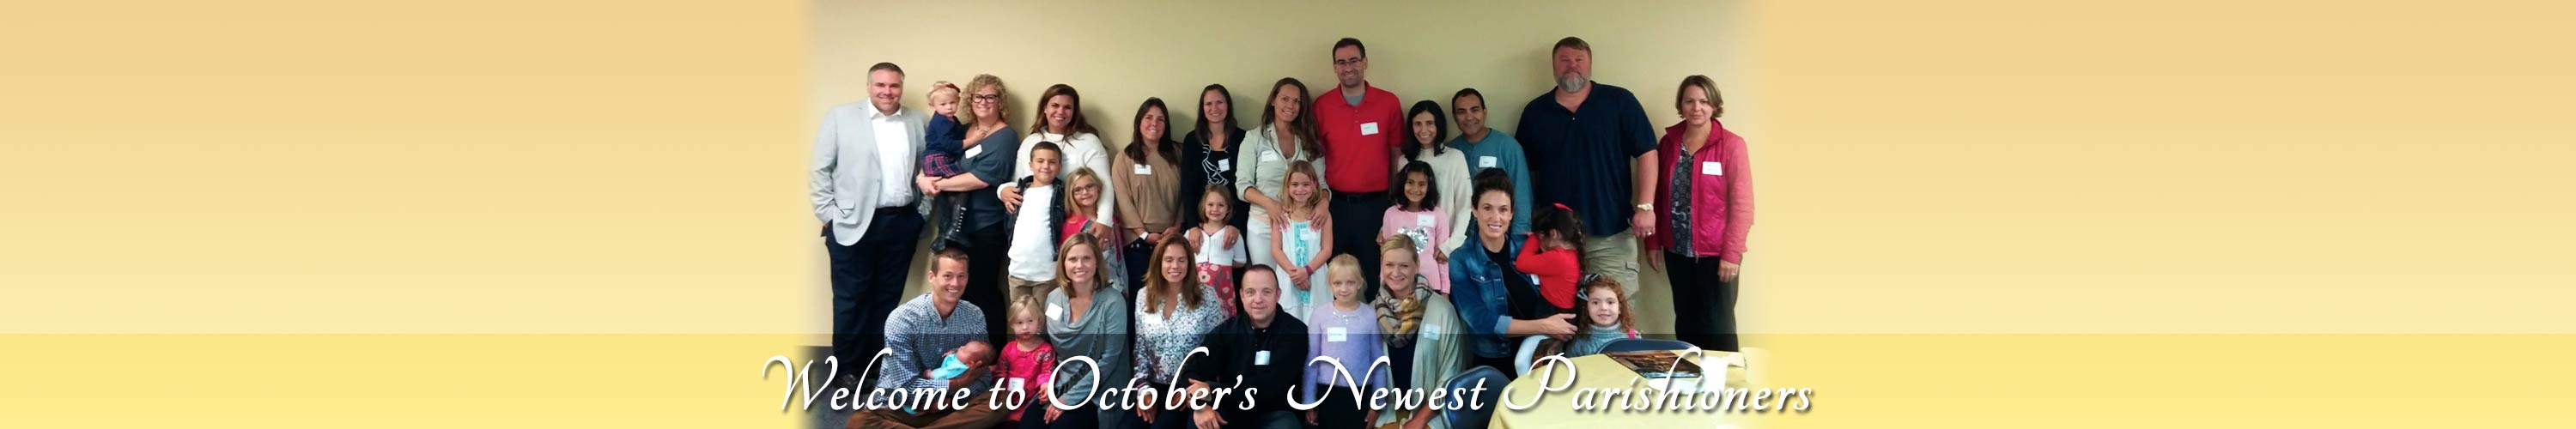 Welcome-New-Parishioners-october-2017